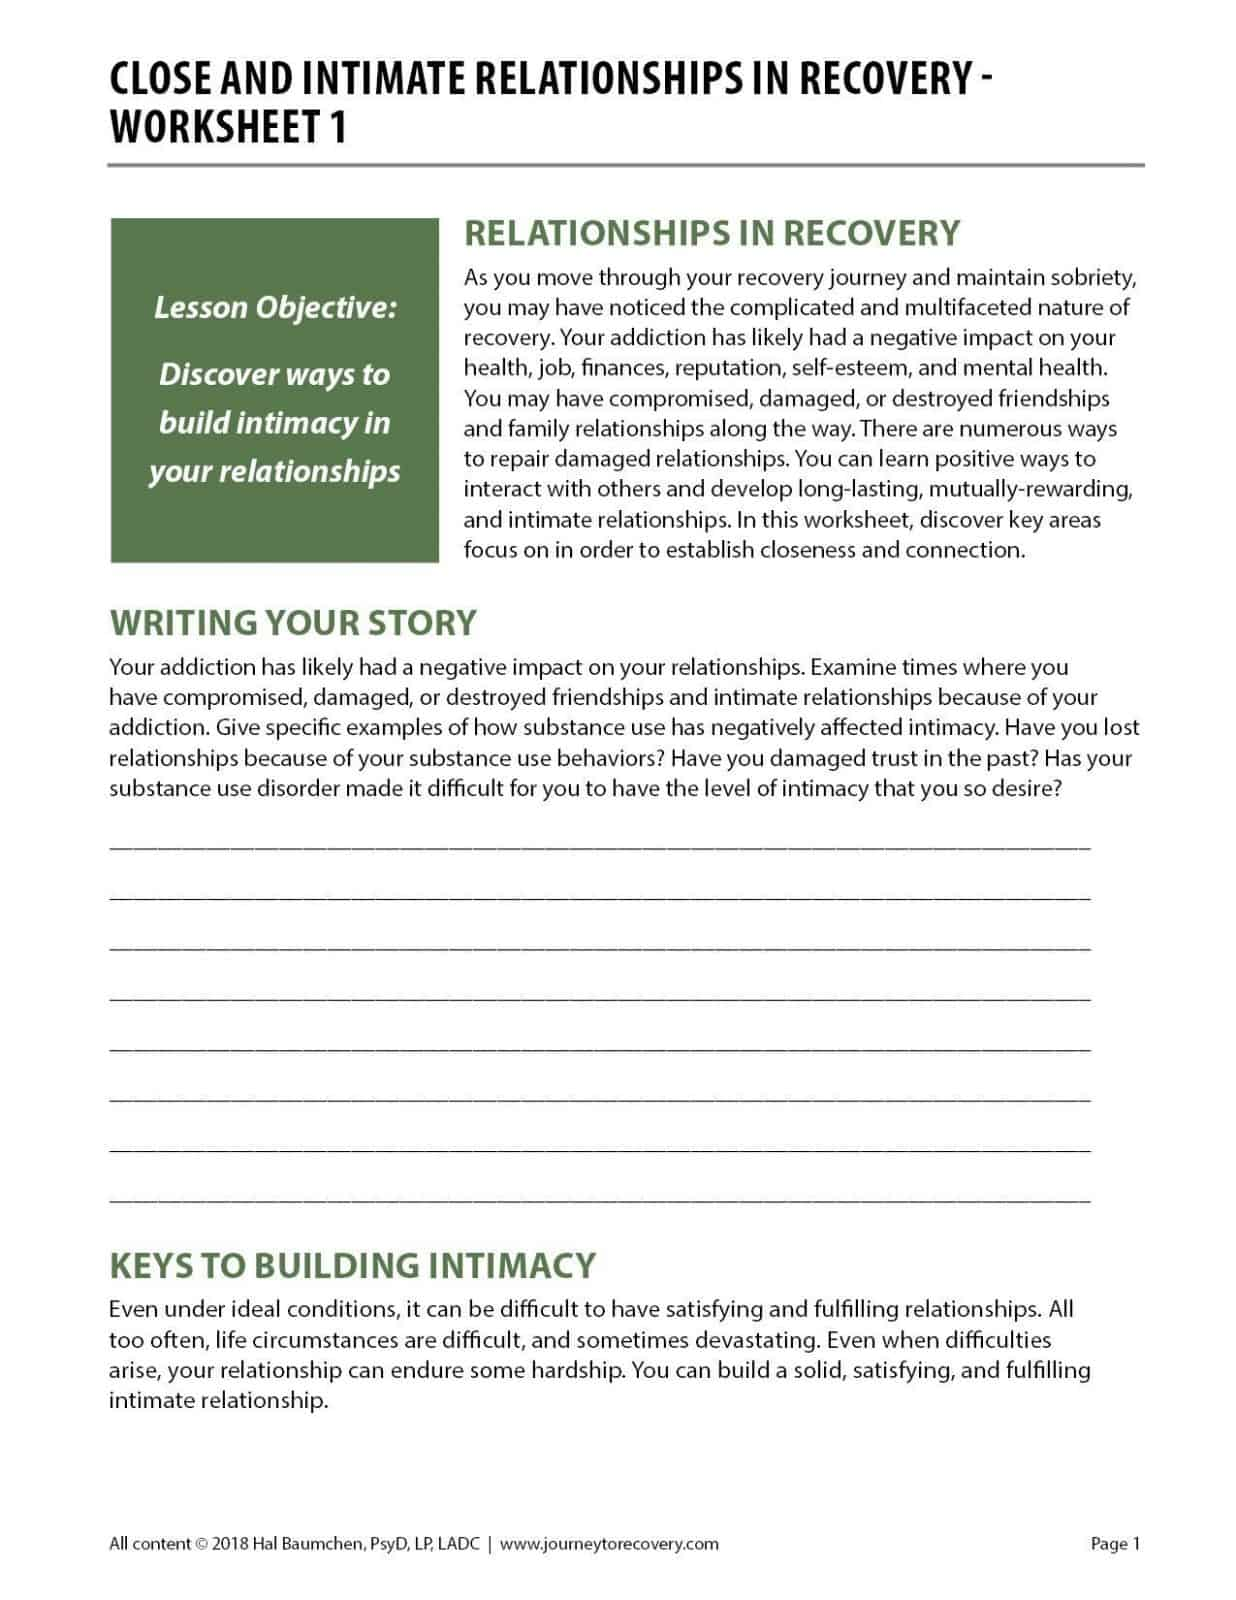 Close and Intimate Relationships in Recovery - Worksheet 1 (COD)